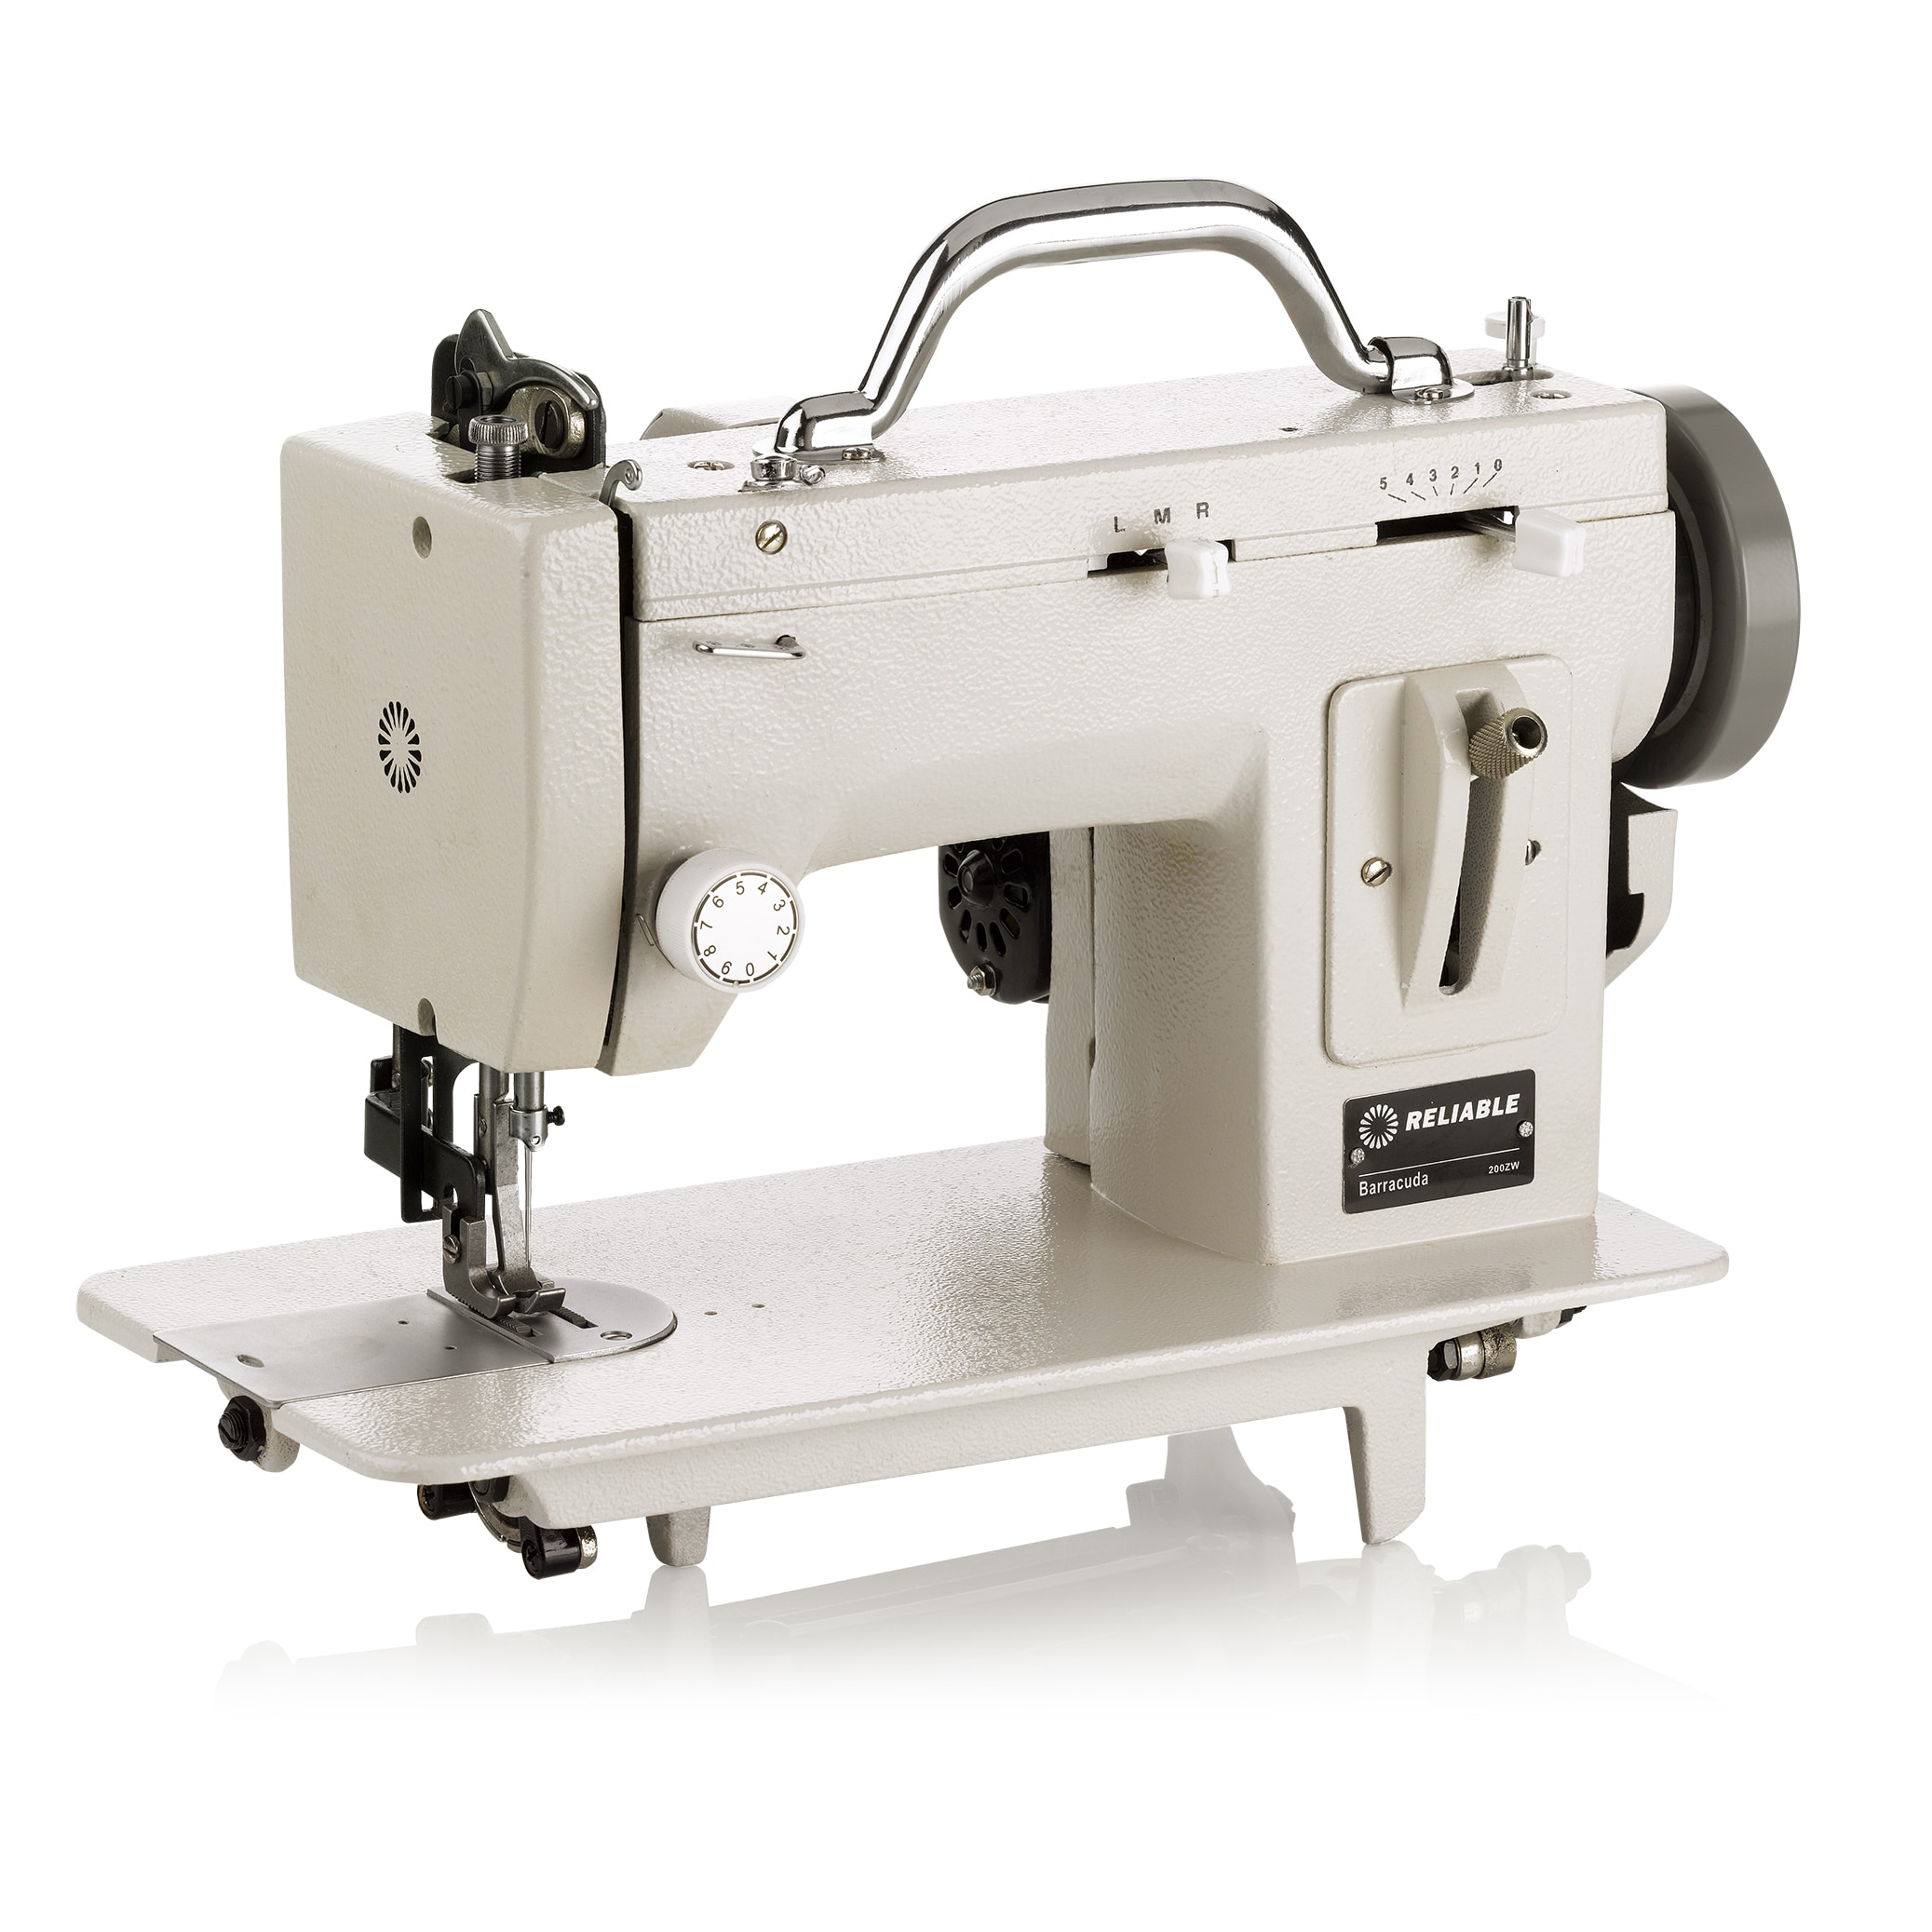 Reliable Barracuda 200ZW Portable Zig-zag Sewing Machine ...